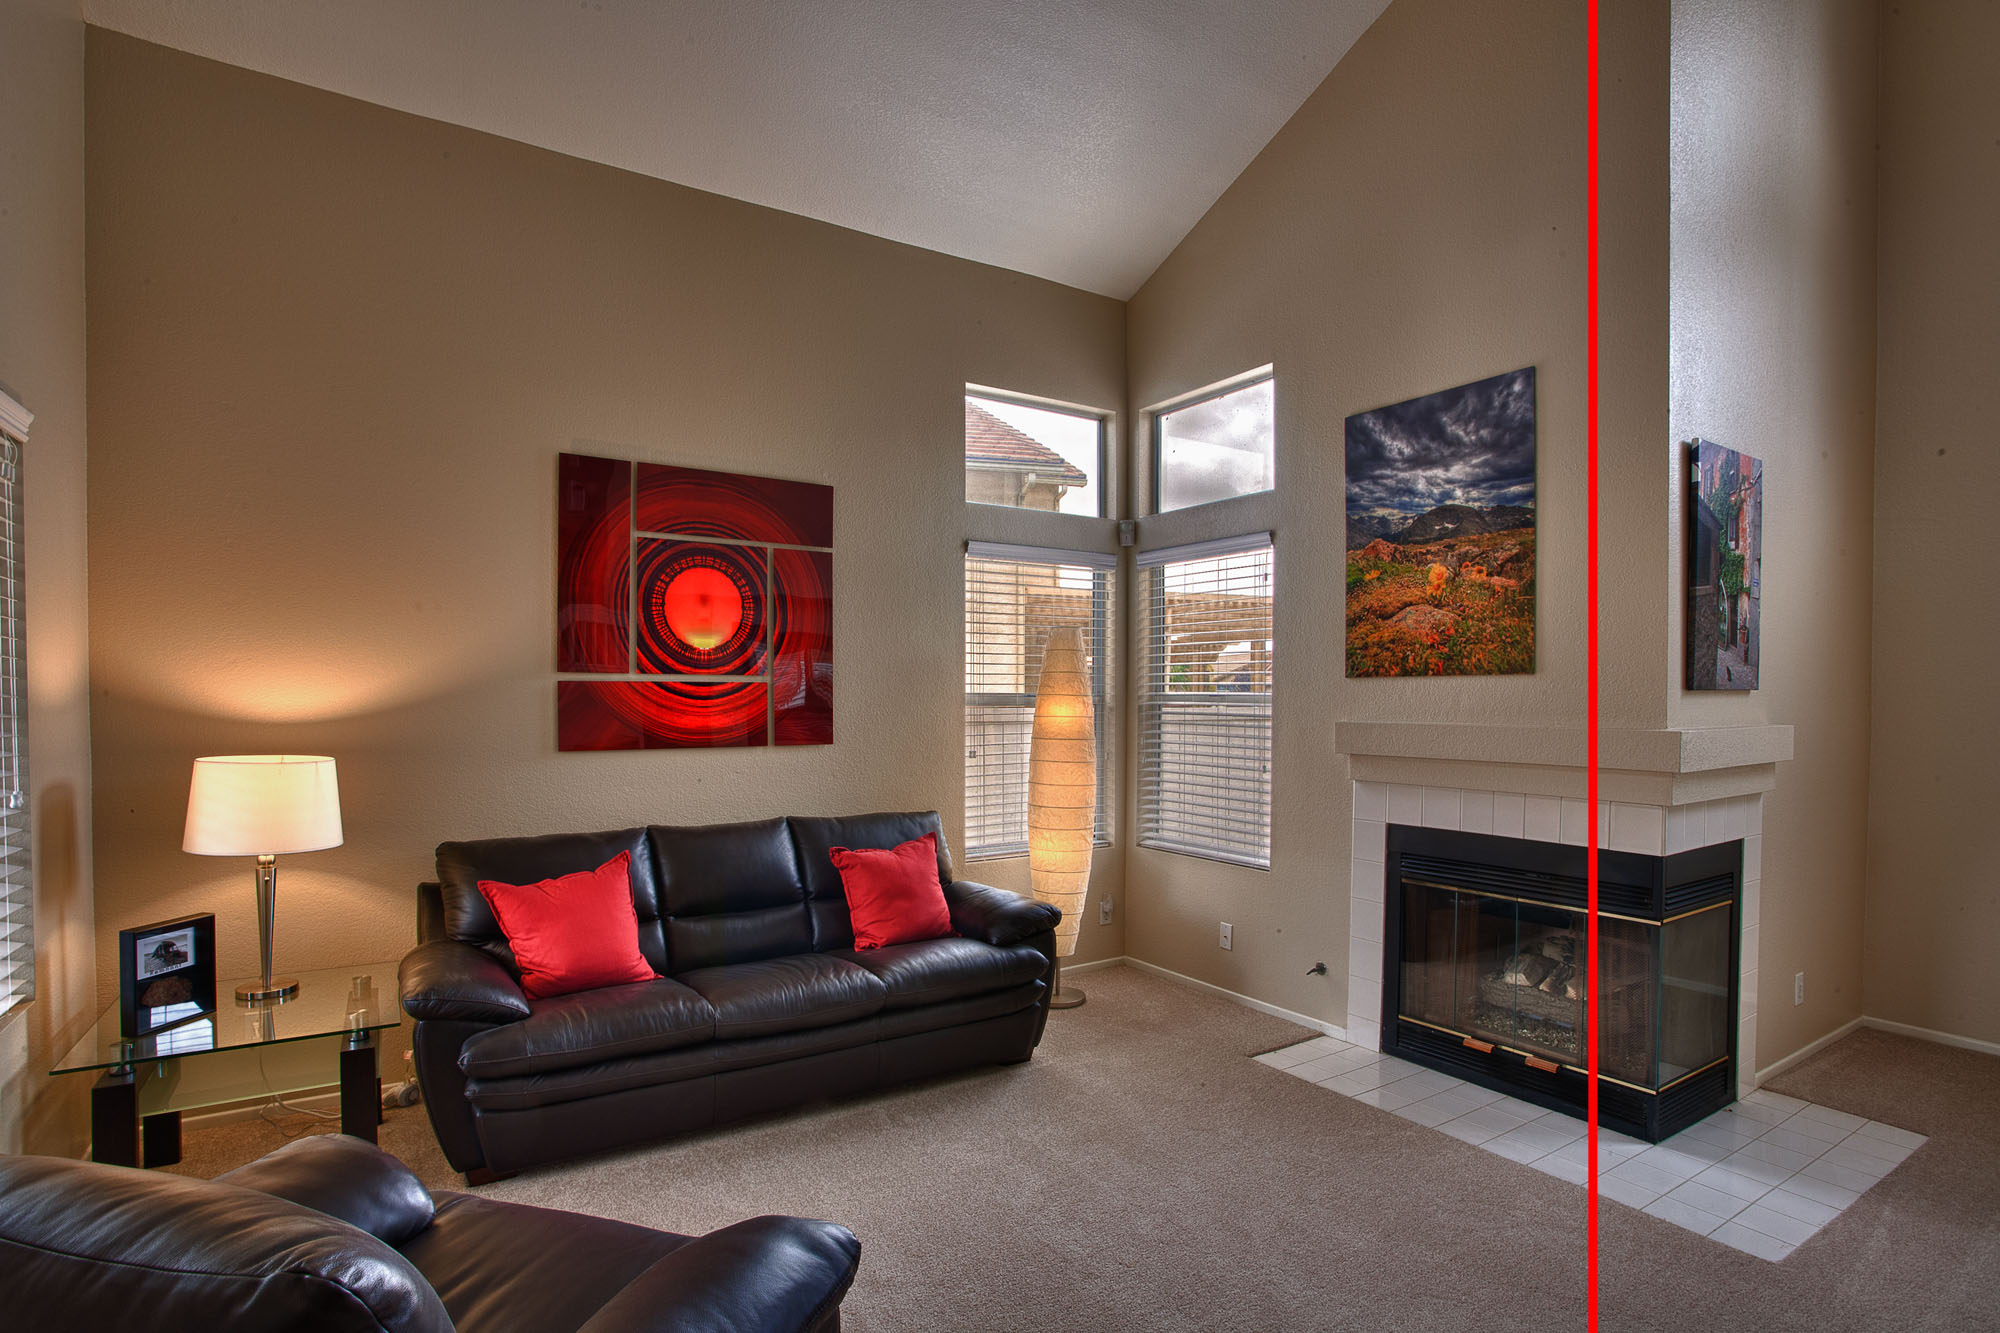 The HDR Image | Lens distortion Correction